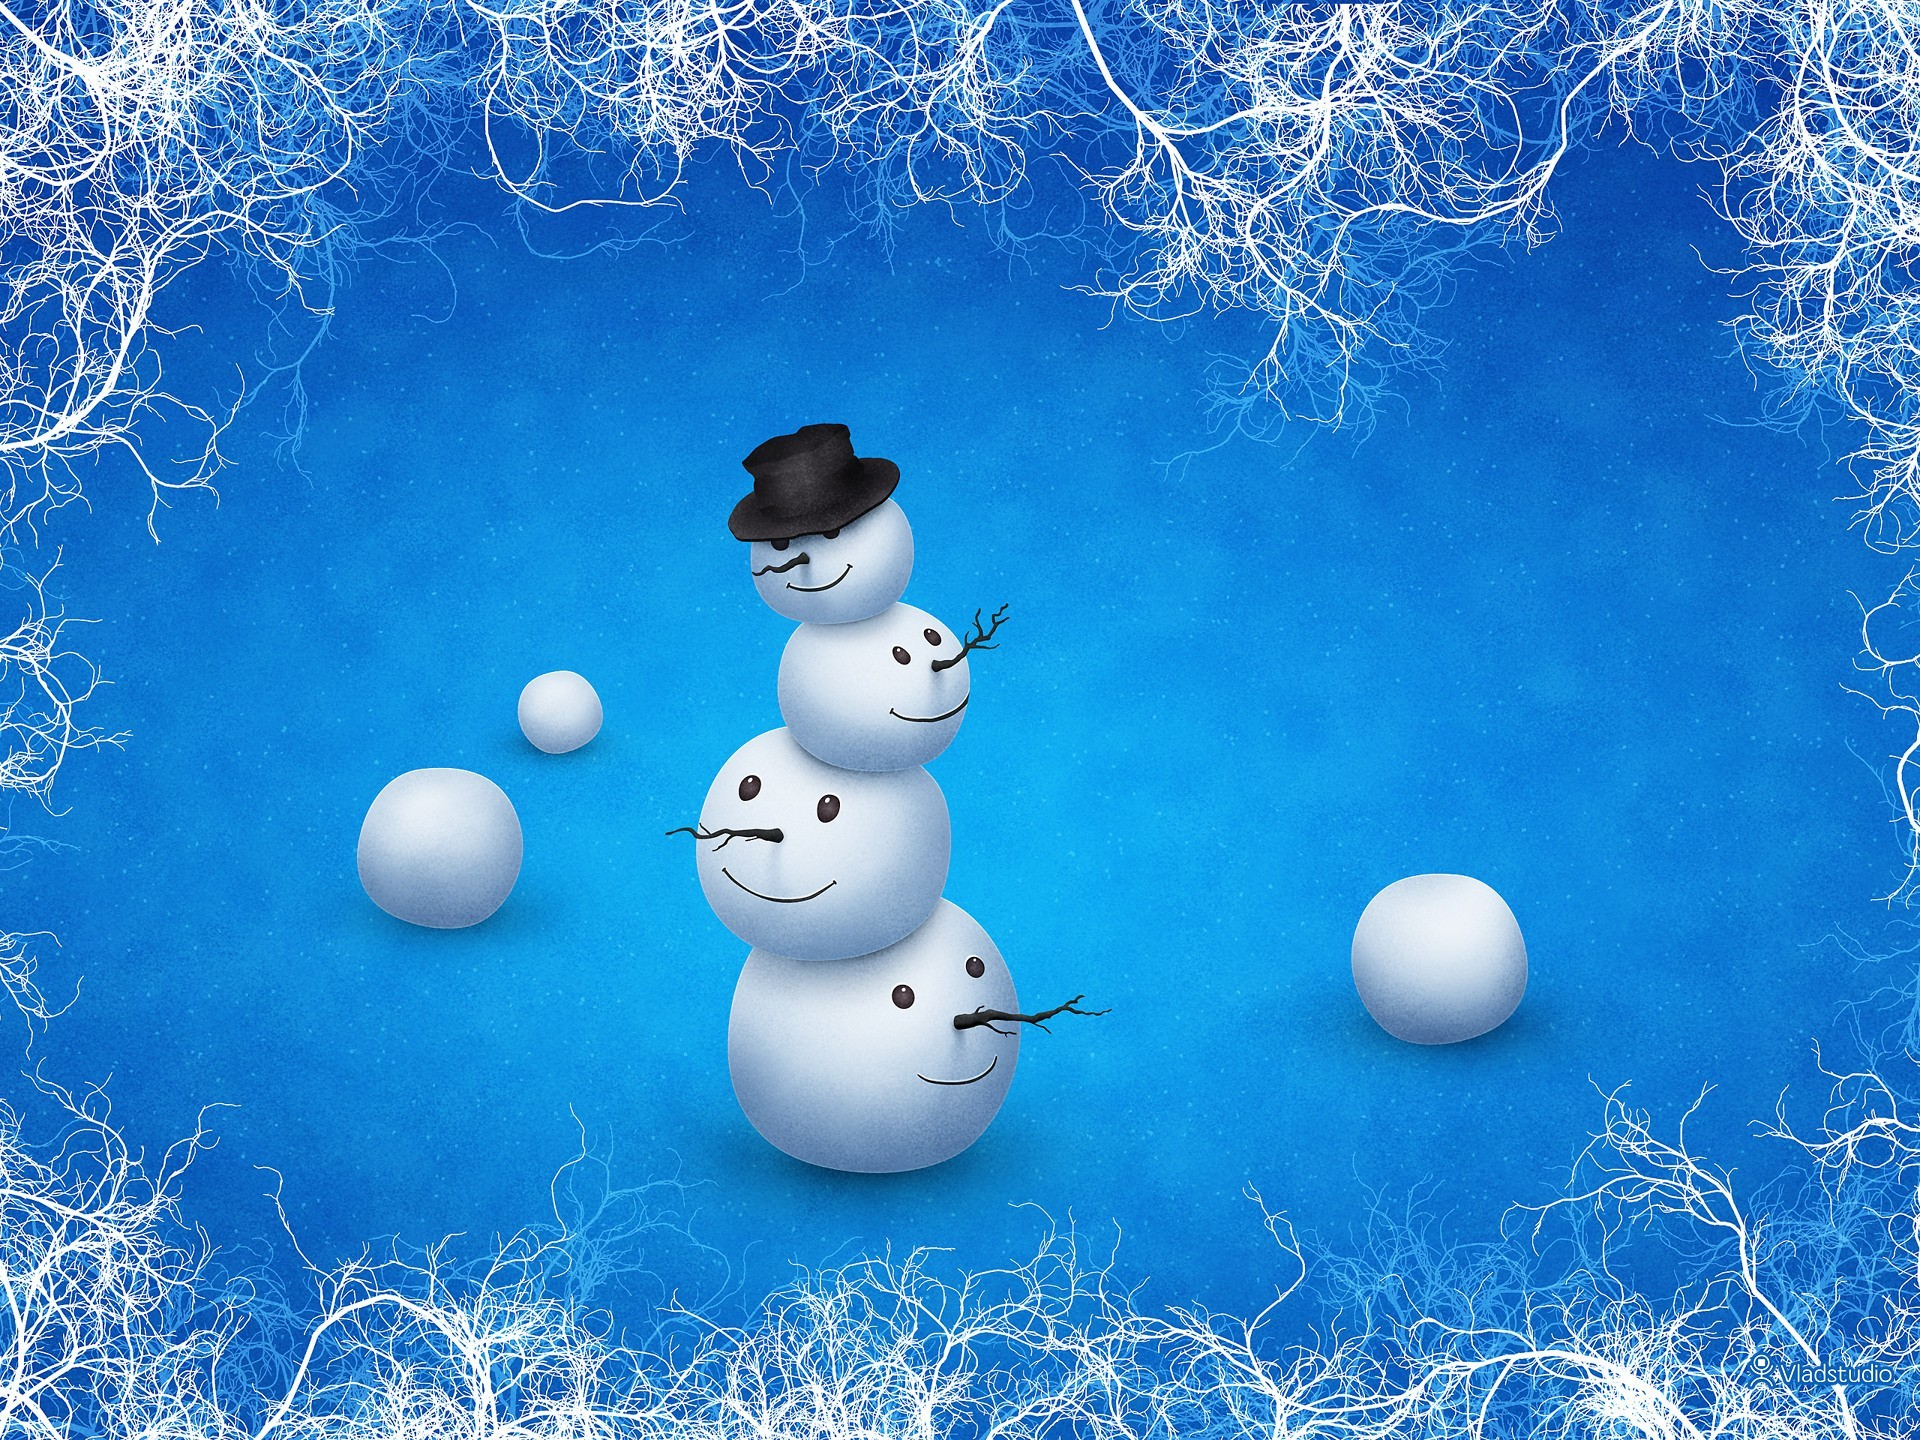 winter Snowmen vladstudio HD Wallpaper